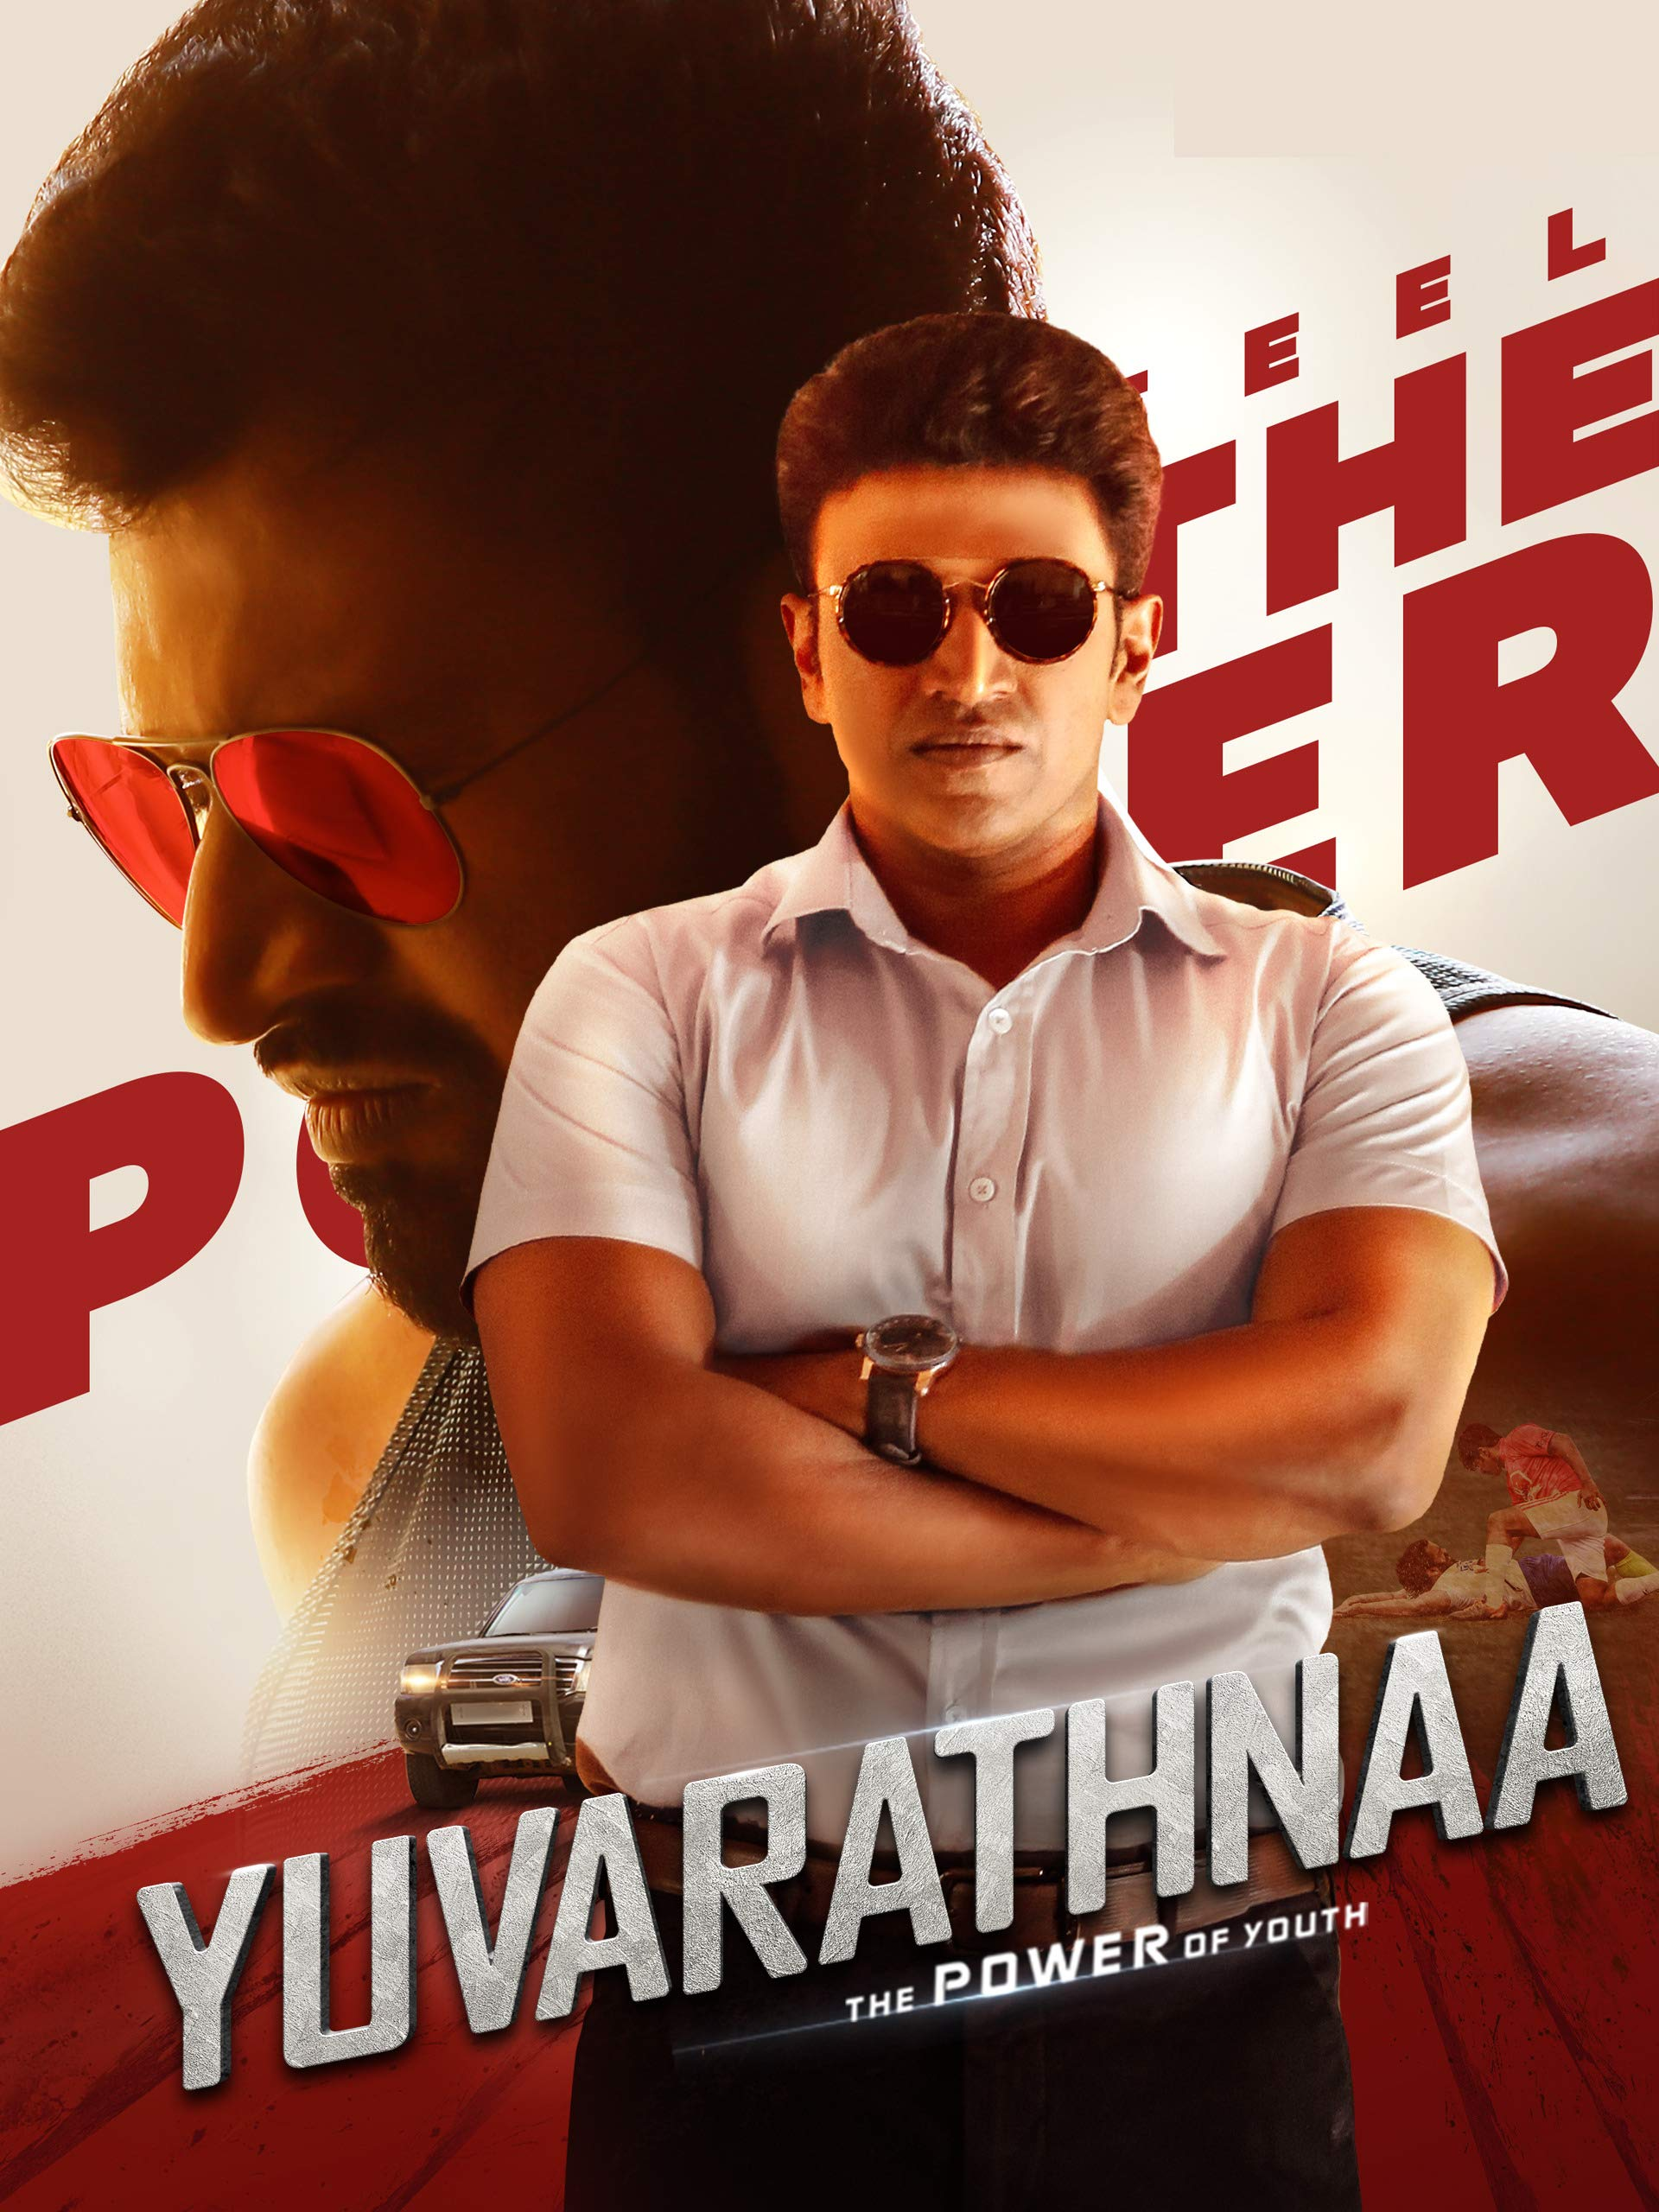 Yuvarathnaa 2021 Hindi Dubbed 400MB HDRip ESub Download